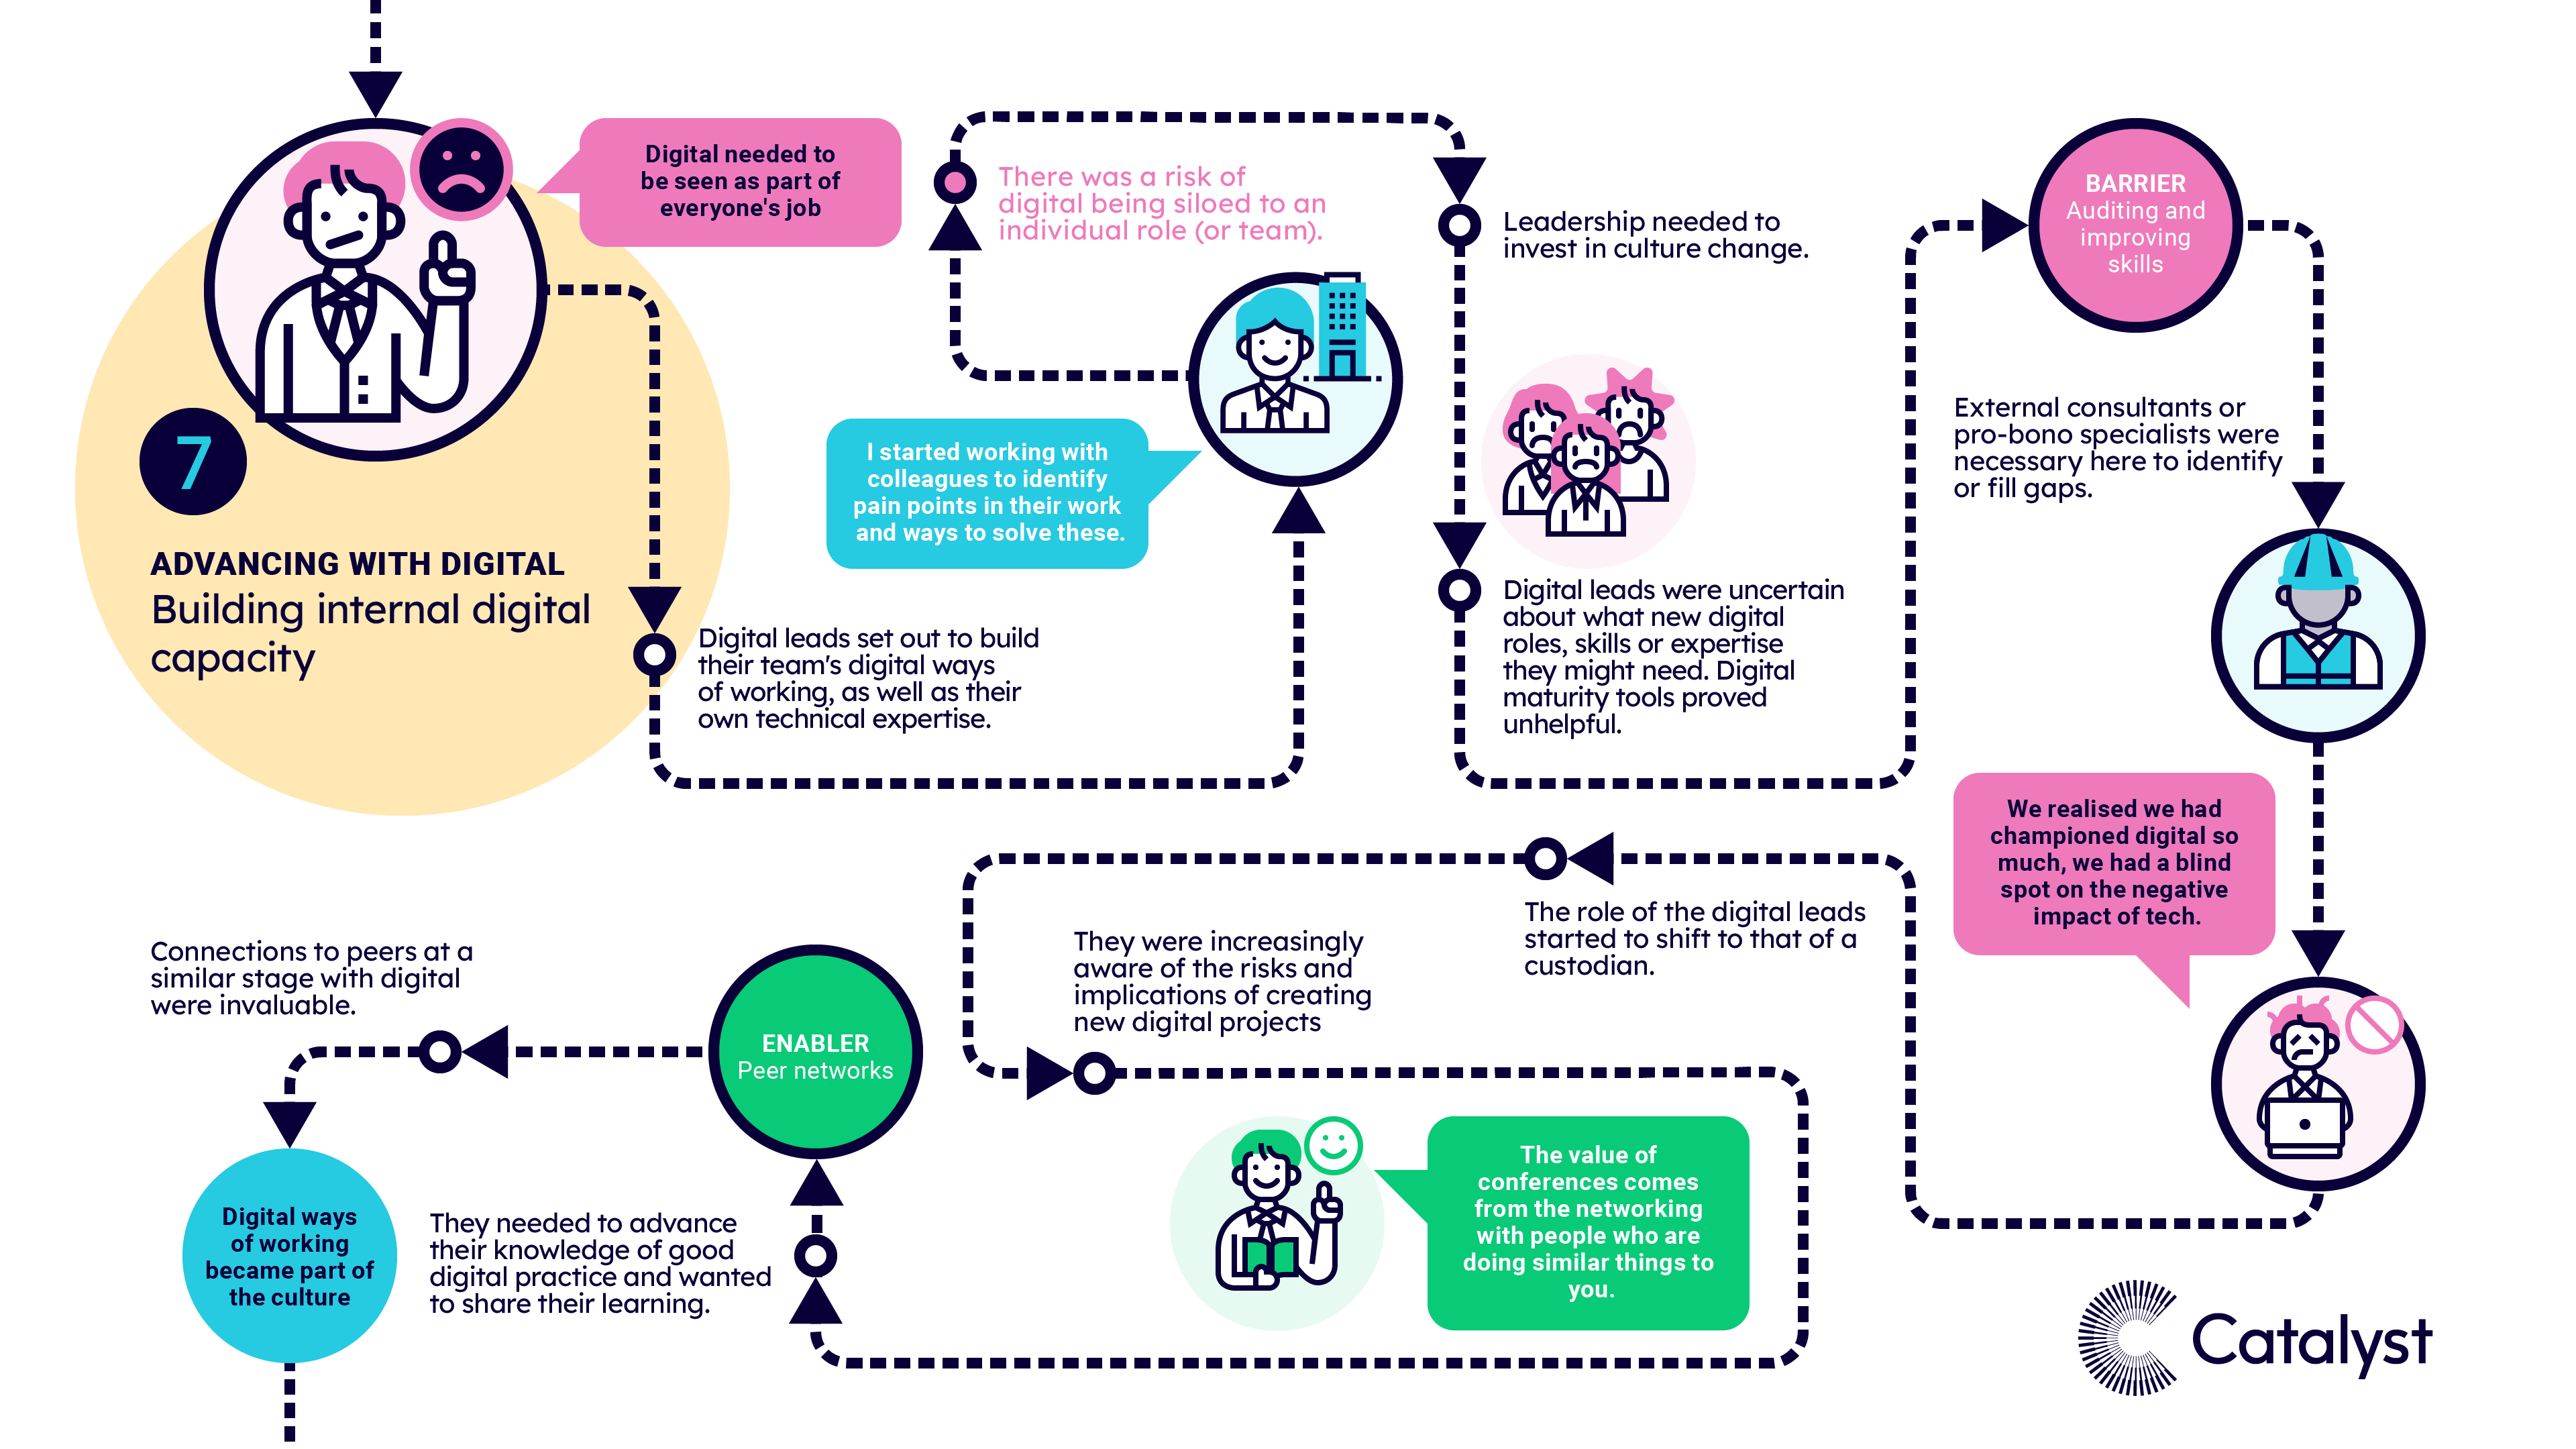 A visual map of pattern 7, when charities were advancing with digital and building internal capacity. The text highlights the most common experiences, risk factors, barriers and enablers at this stage of the journey.